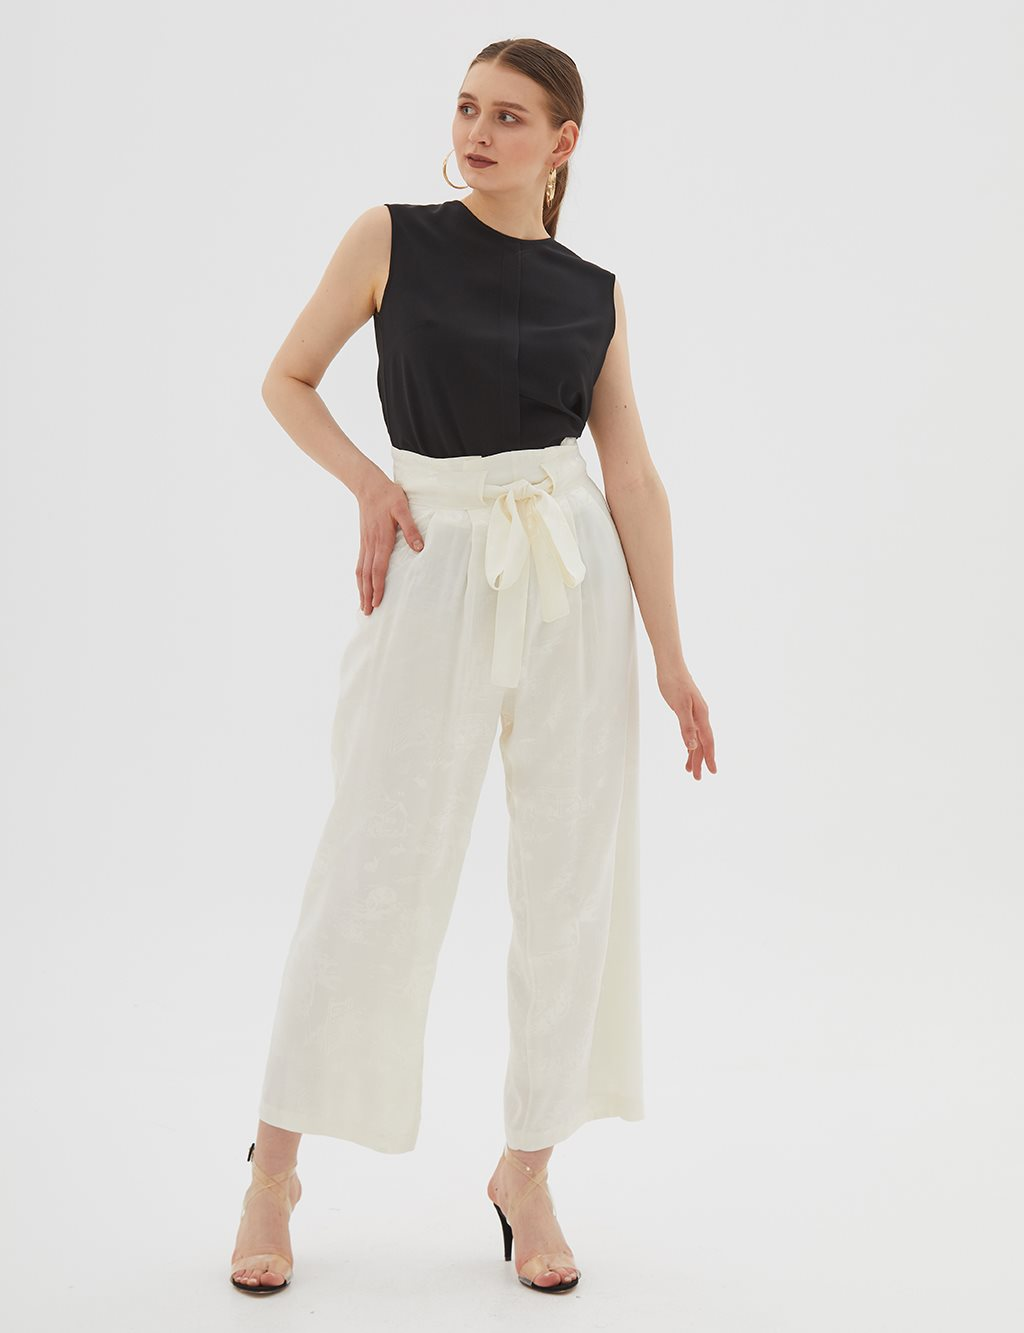 Patterned Oversize Pants B20 19186 Ecru